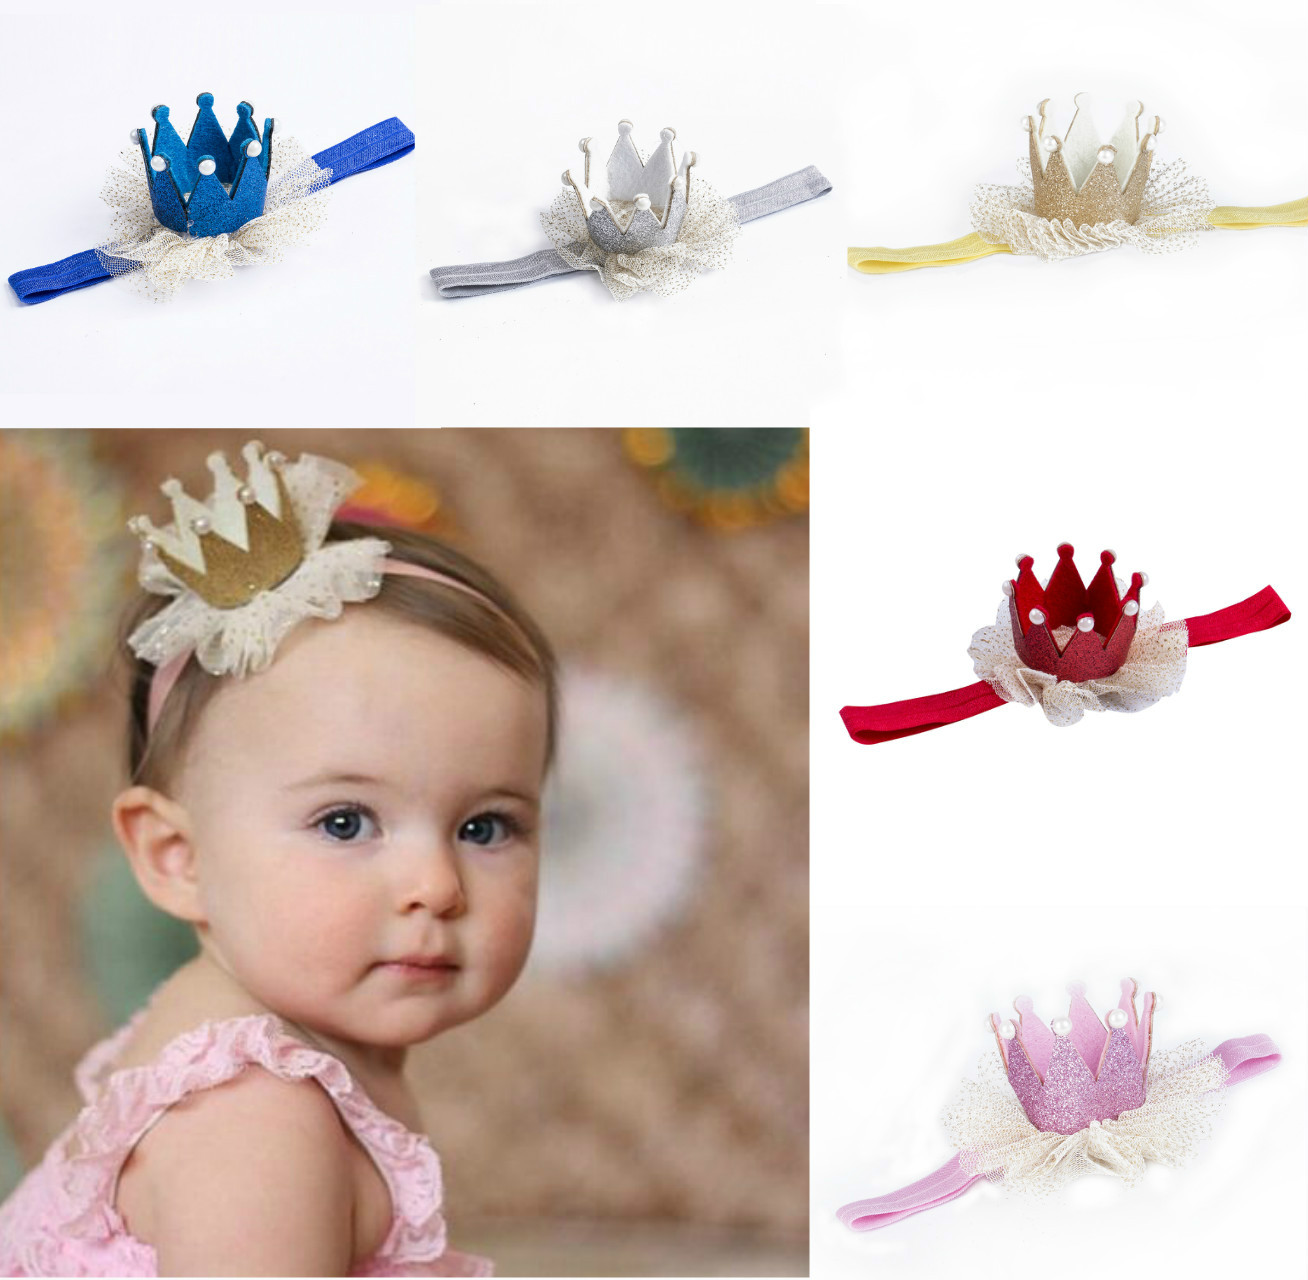 Baby Girl Hairband Headdress Newborn Baby Kids Flower Soft Elastic Tiara Hair Band Girls Bow Headband Hair Accessories 2 sanitary stainless steel ball valve 2 way 304 quick installed food grade pneumatic valve double acting straight way valve